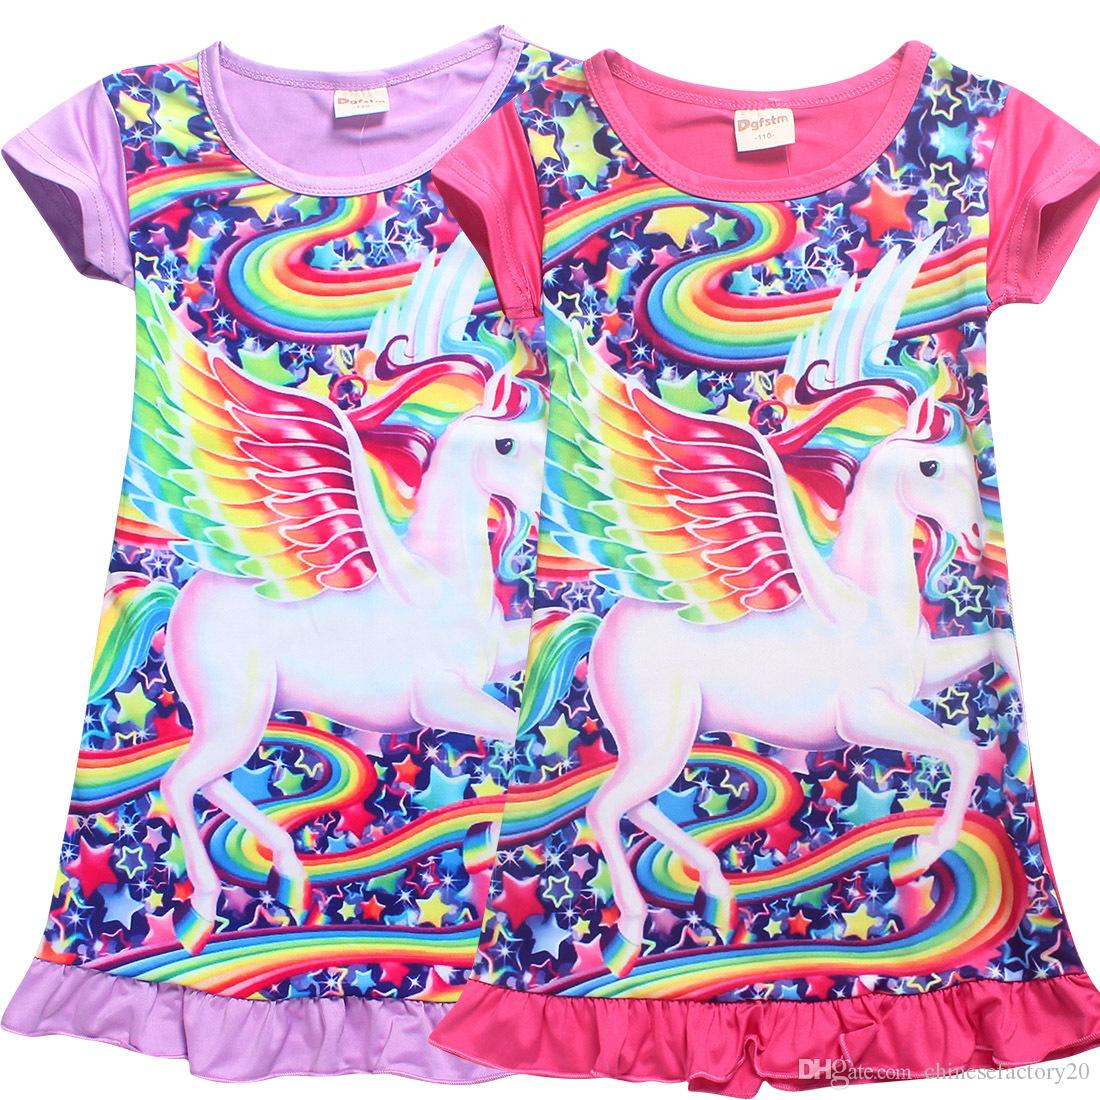 c233f1552 Girl Dress Unicorn Cartoon Pajamas Baby Kids Nightwear Cute Short ...